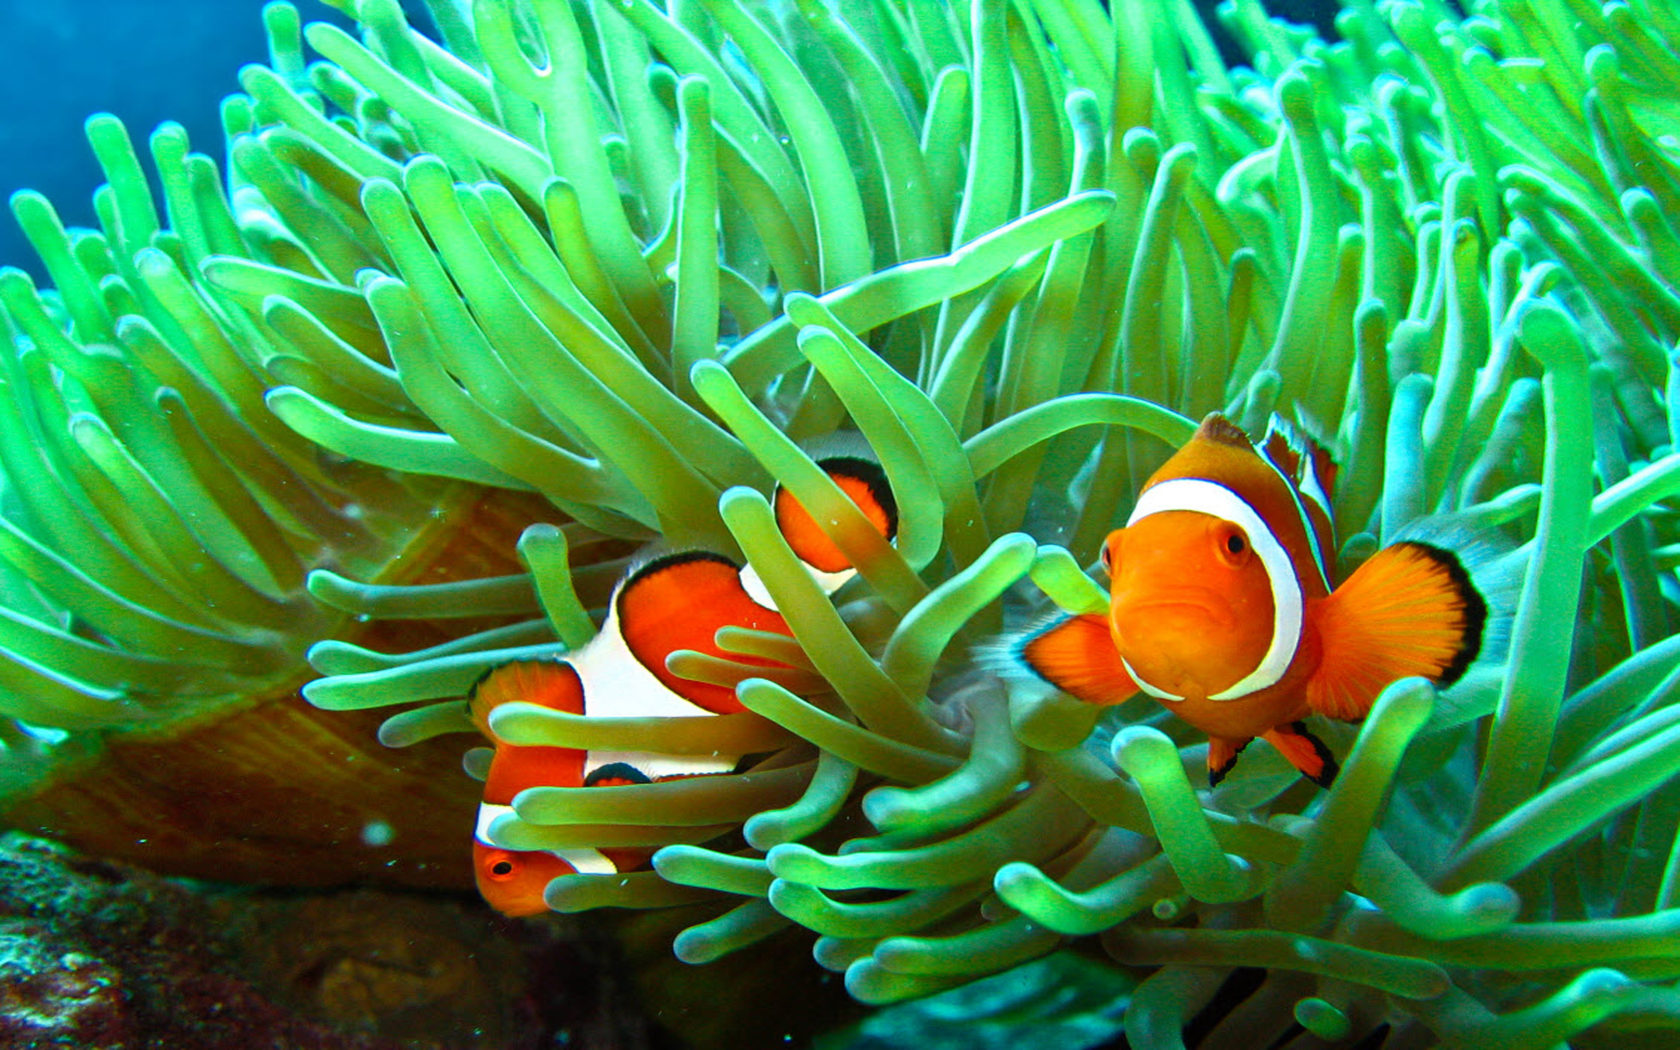 Iphone 5 Clown Fish Wallpaper Sea Animals Clownfish And Anemone Wallpaper Hd